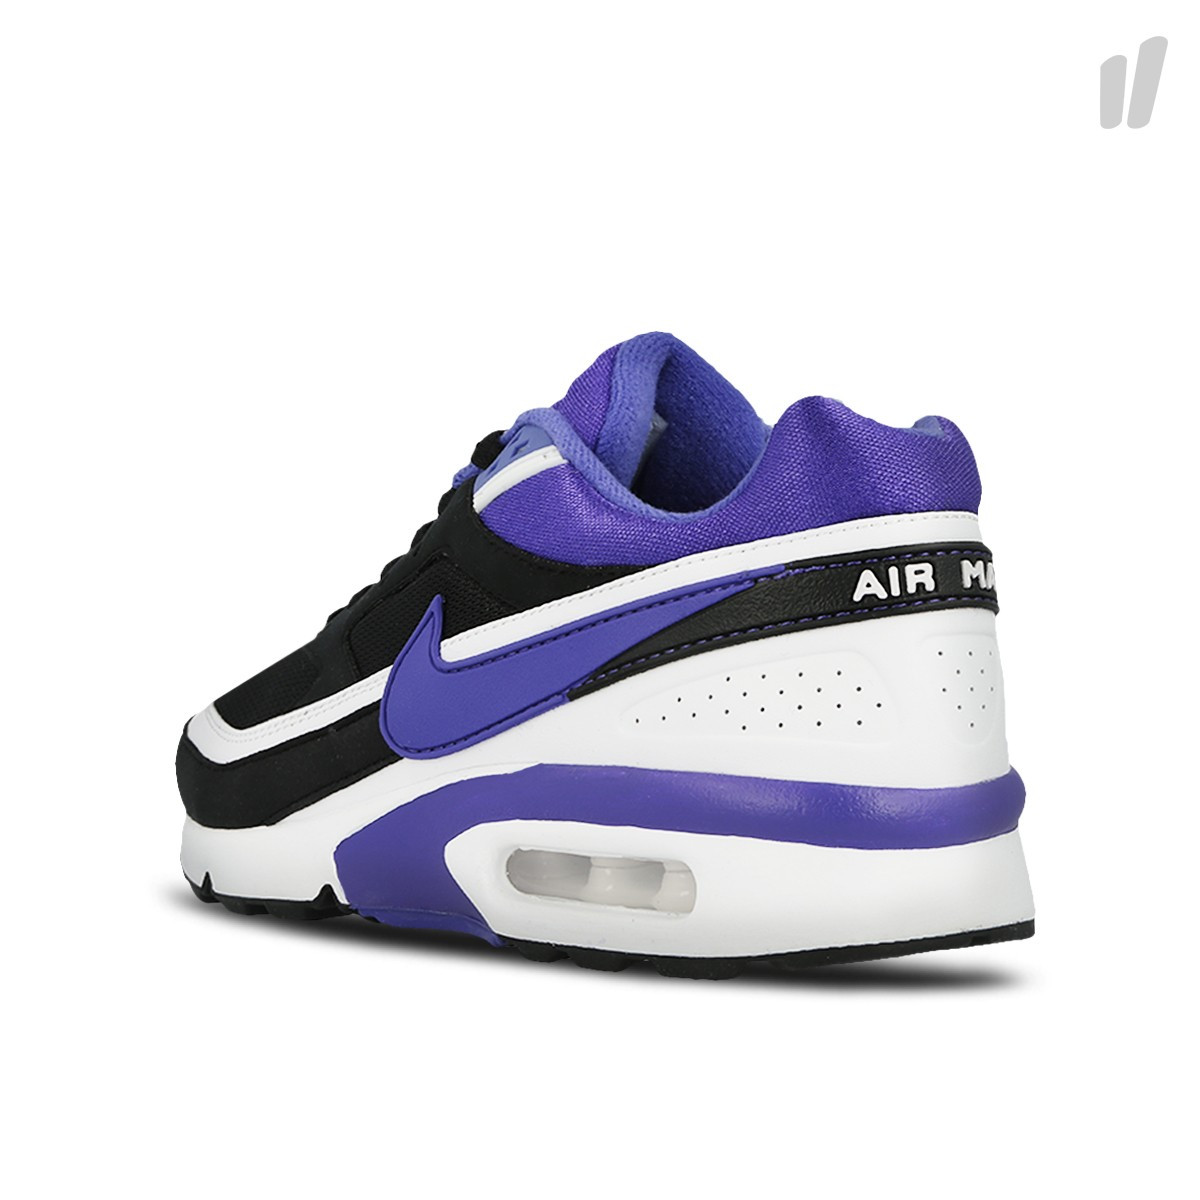 Nike Air Max Classic Innovador Nike Air Max Classic Bw Og 051 Overkill Of 40  Magnífico Nike Air Max Classic